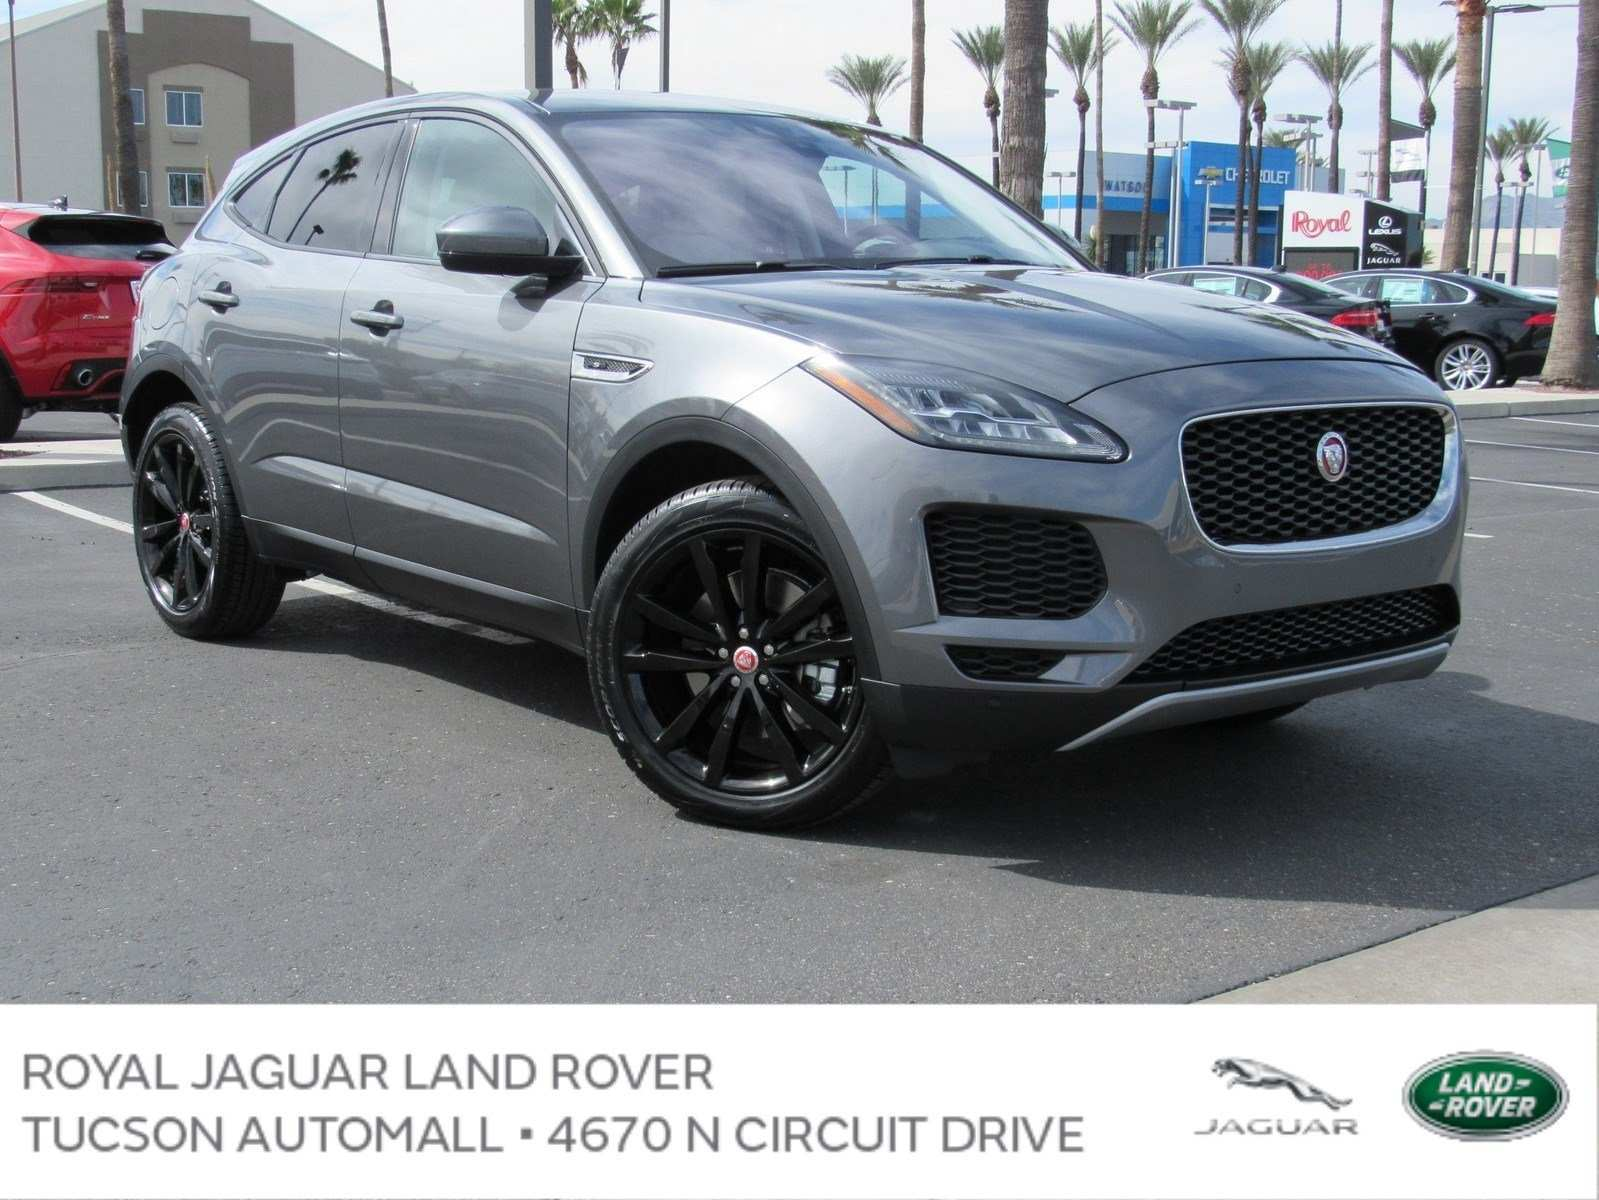 80 New E Pace Jaguar 2019 Picture